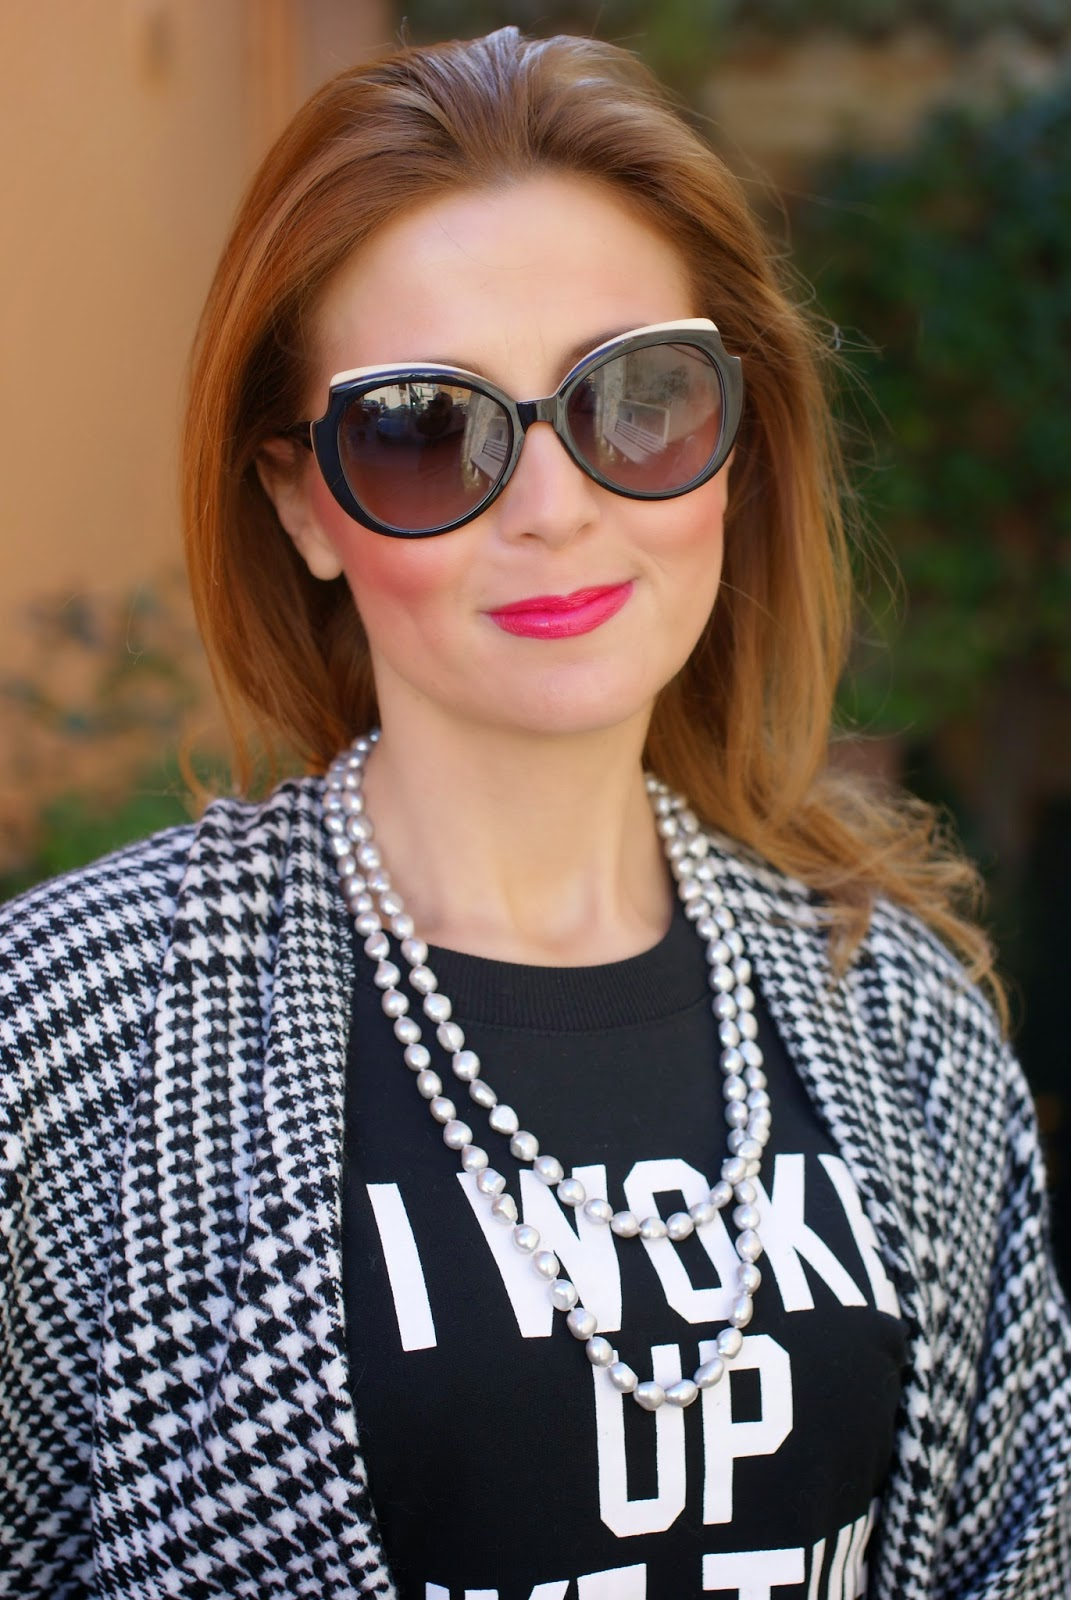 Pearls & Clasp necklace, Mac Viva Glam Miley lipstick on Fashion and Cookies fashion blog